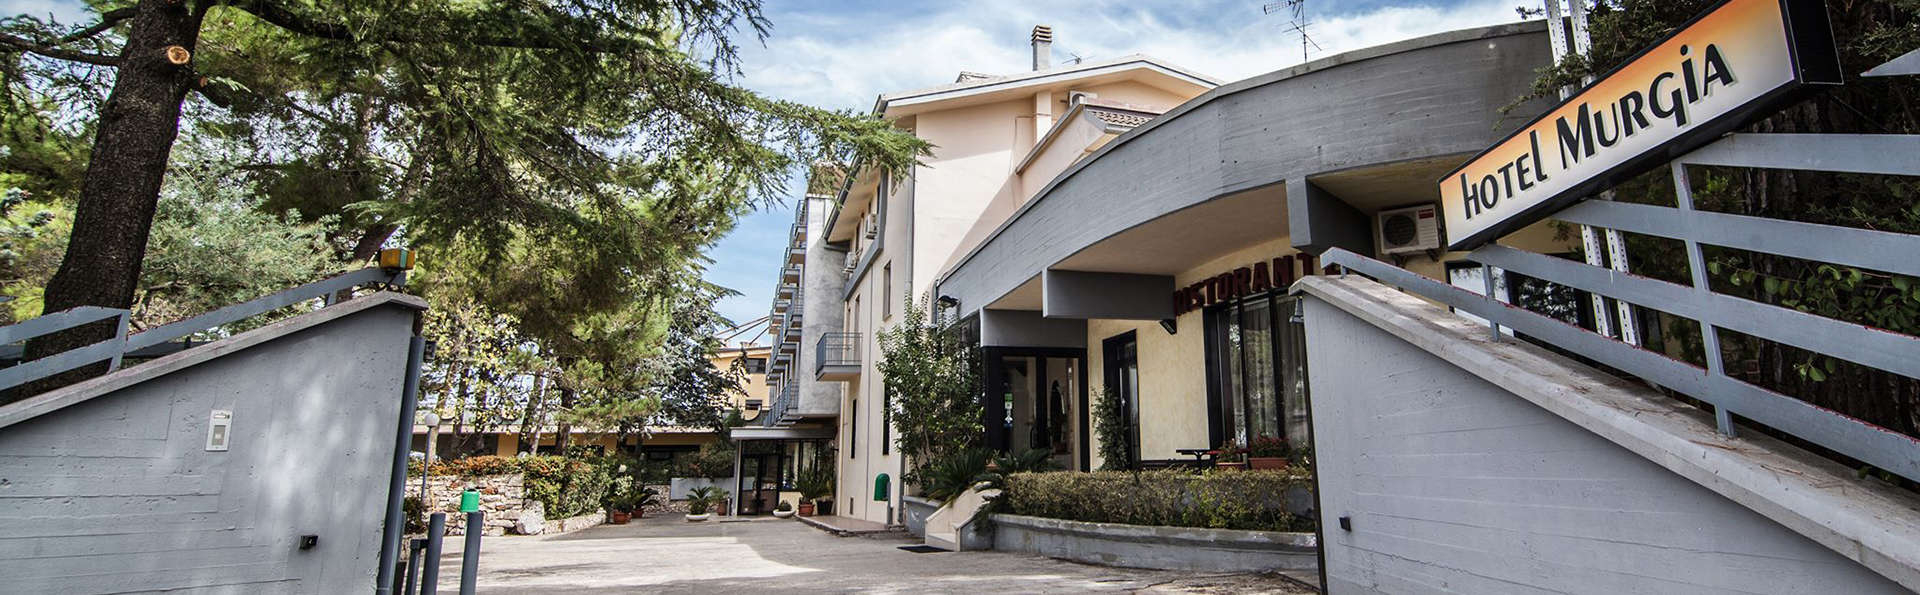 Hotel Murgia - EDIT_front.jpg